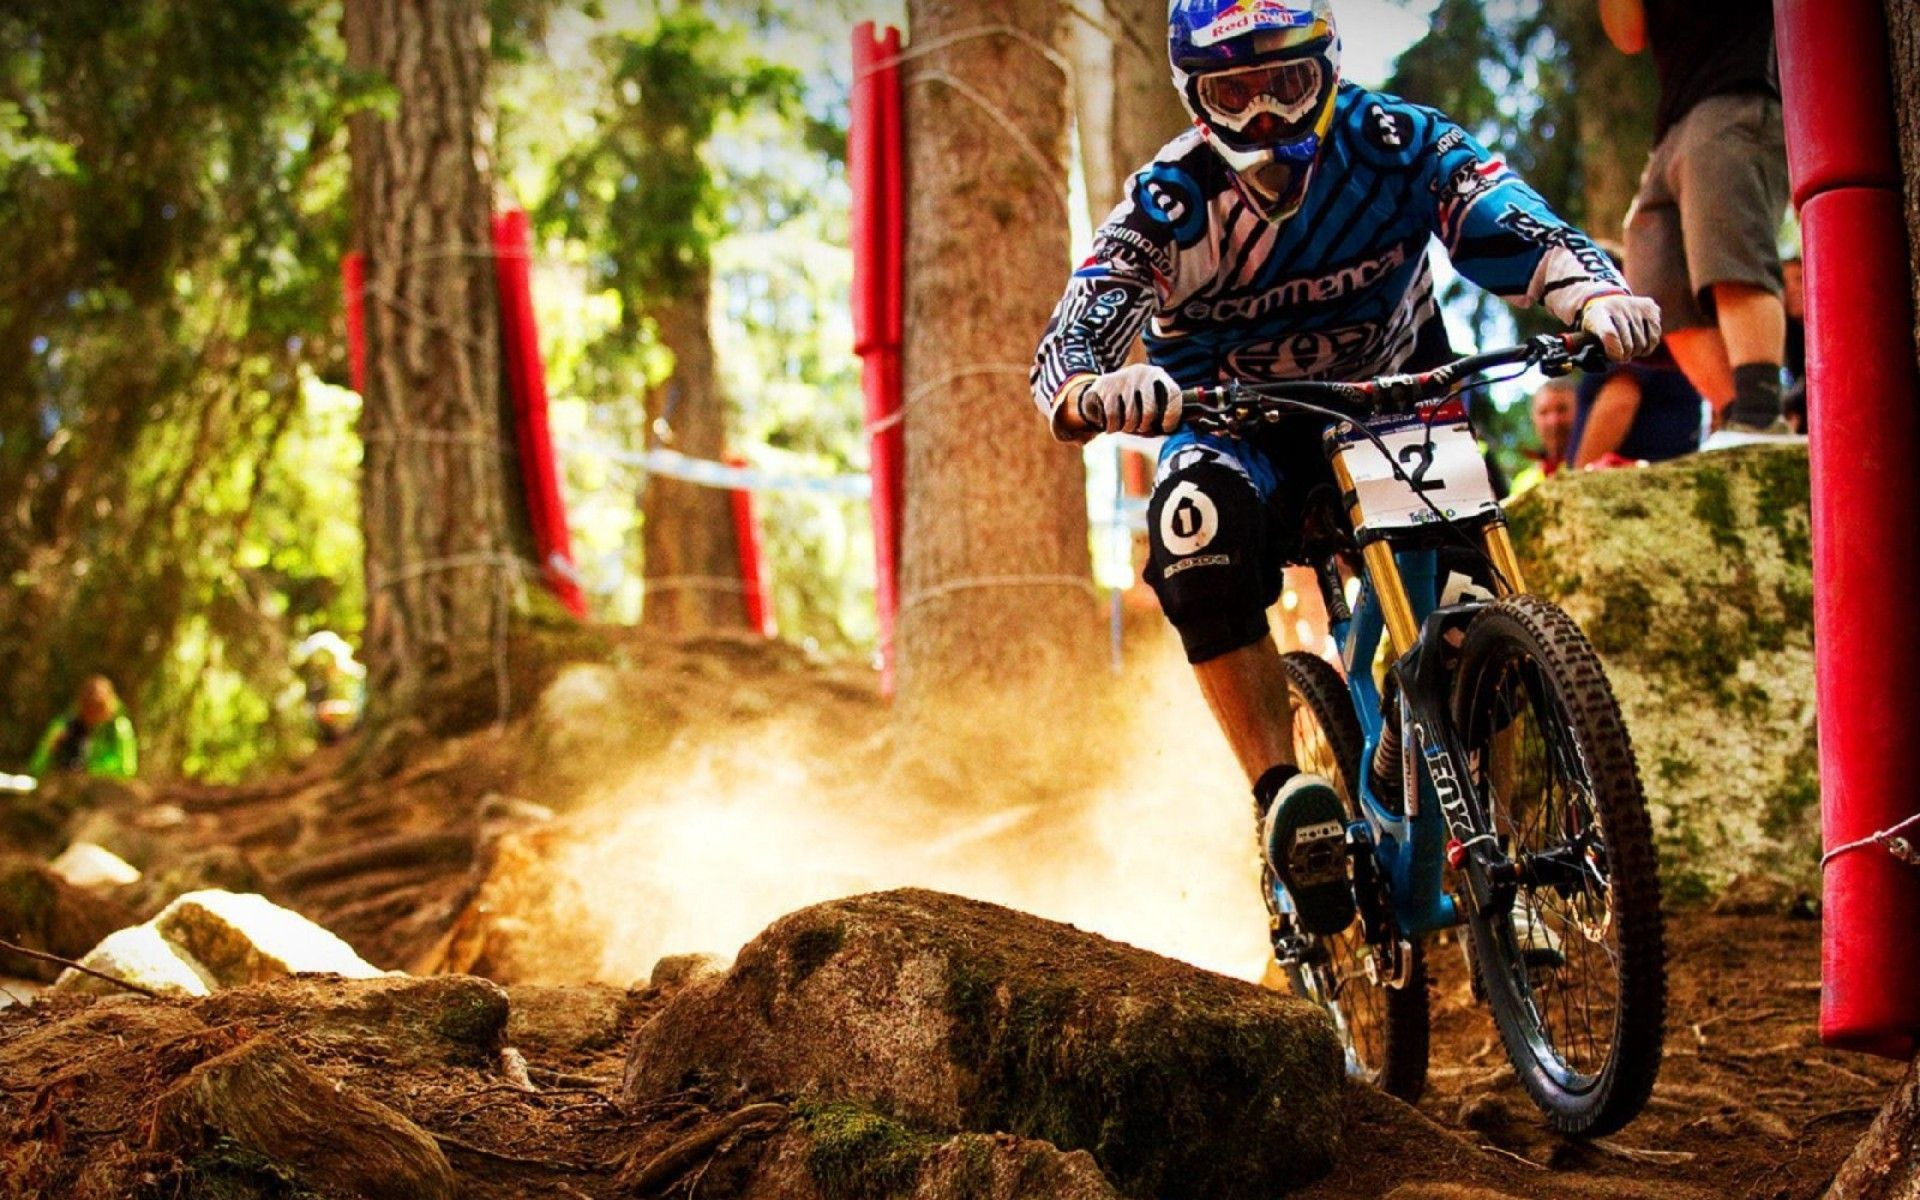 Downhill Bikes Wallpaper